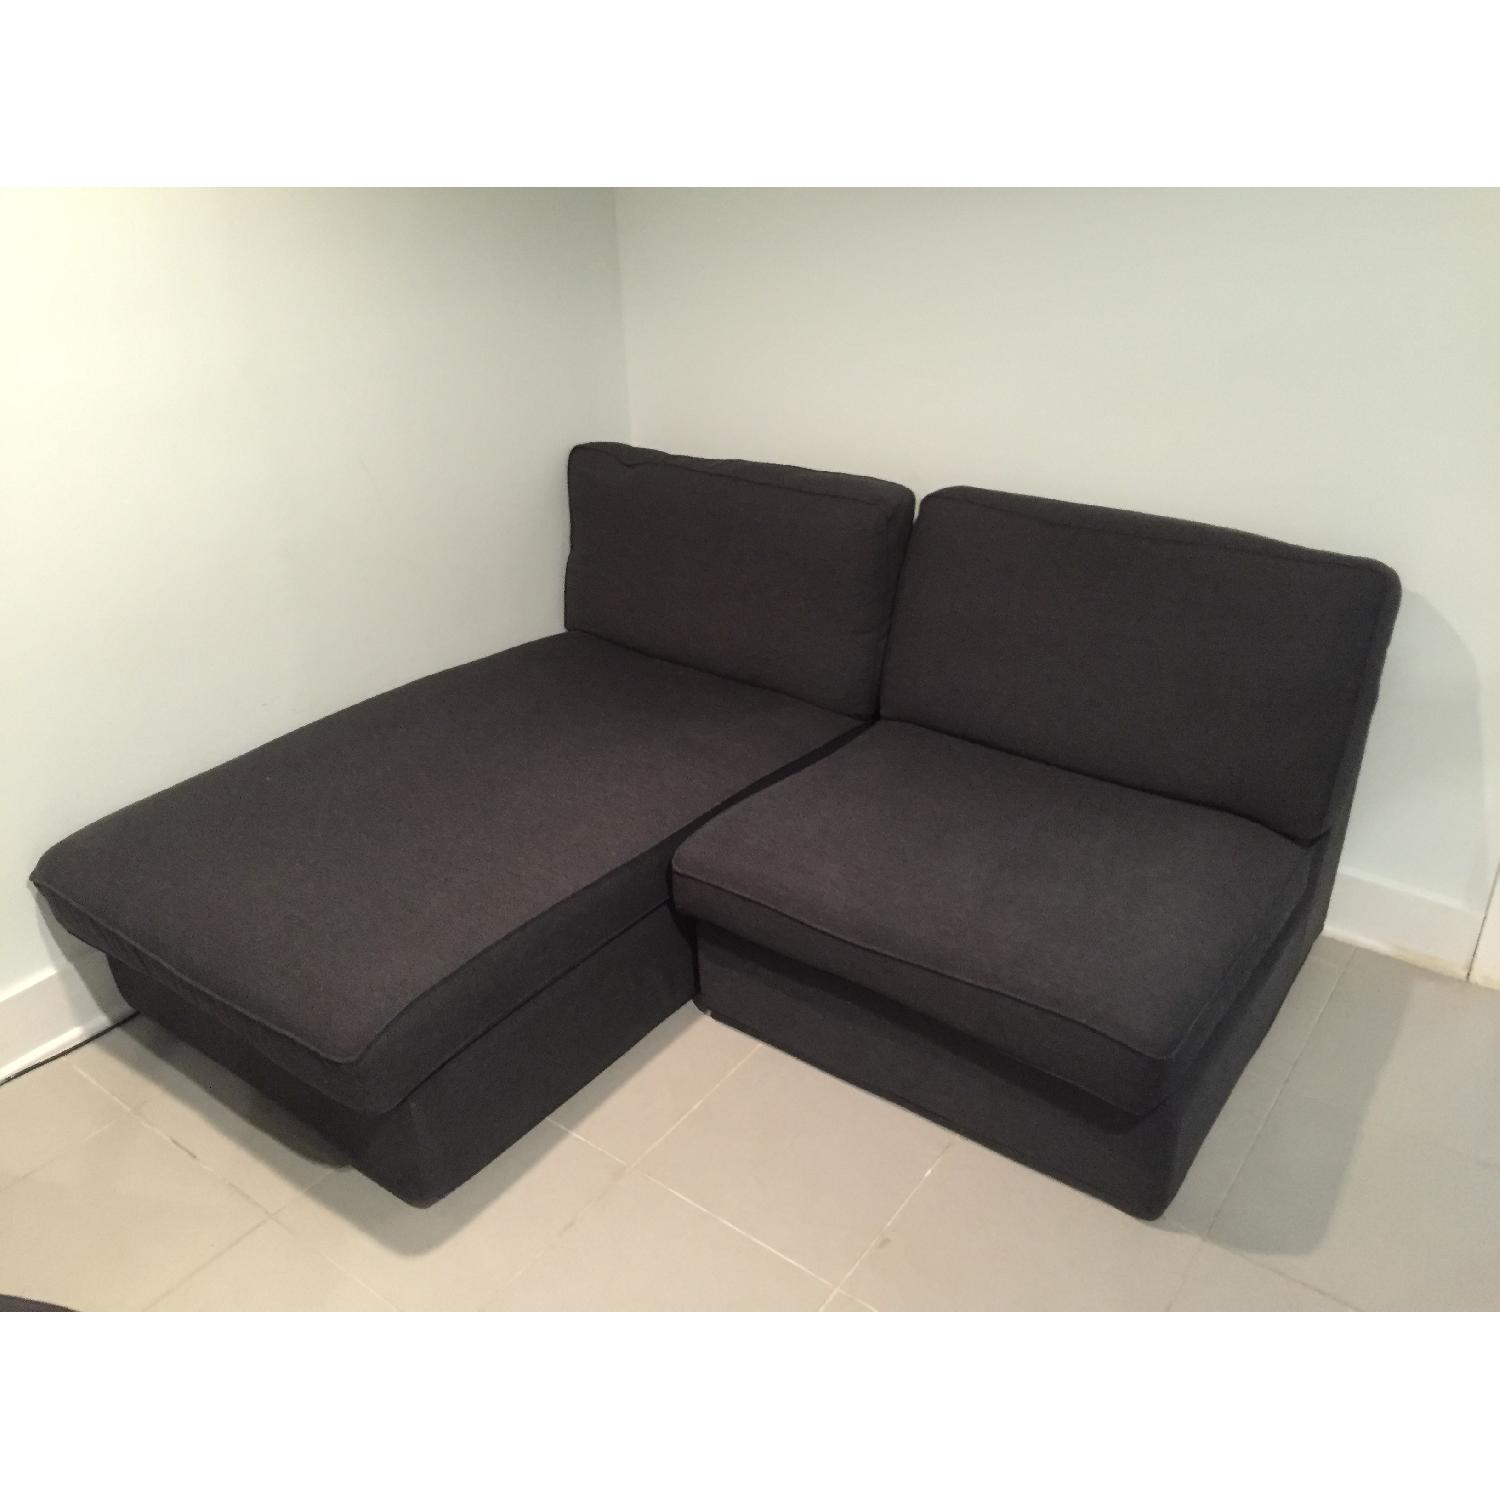 Ikea Kivik Chaise w/ One Seat Section - image-5